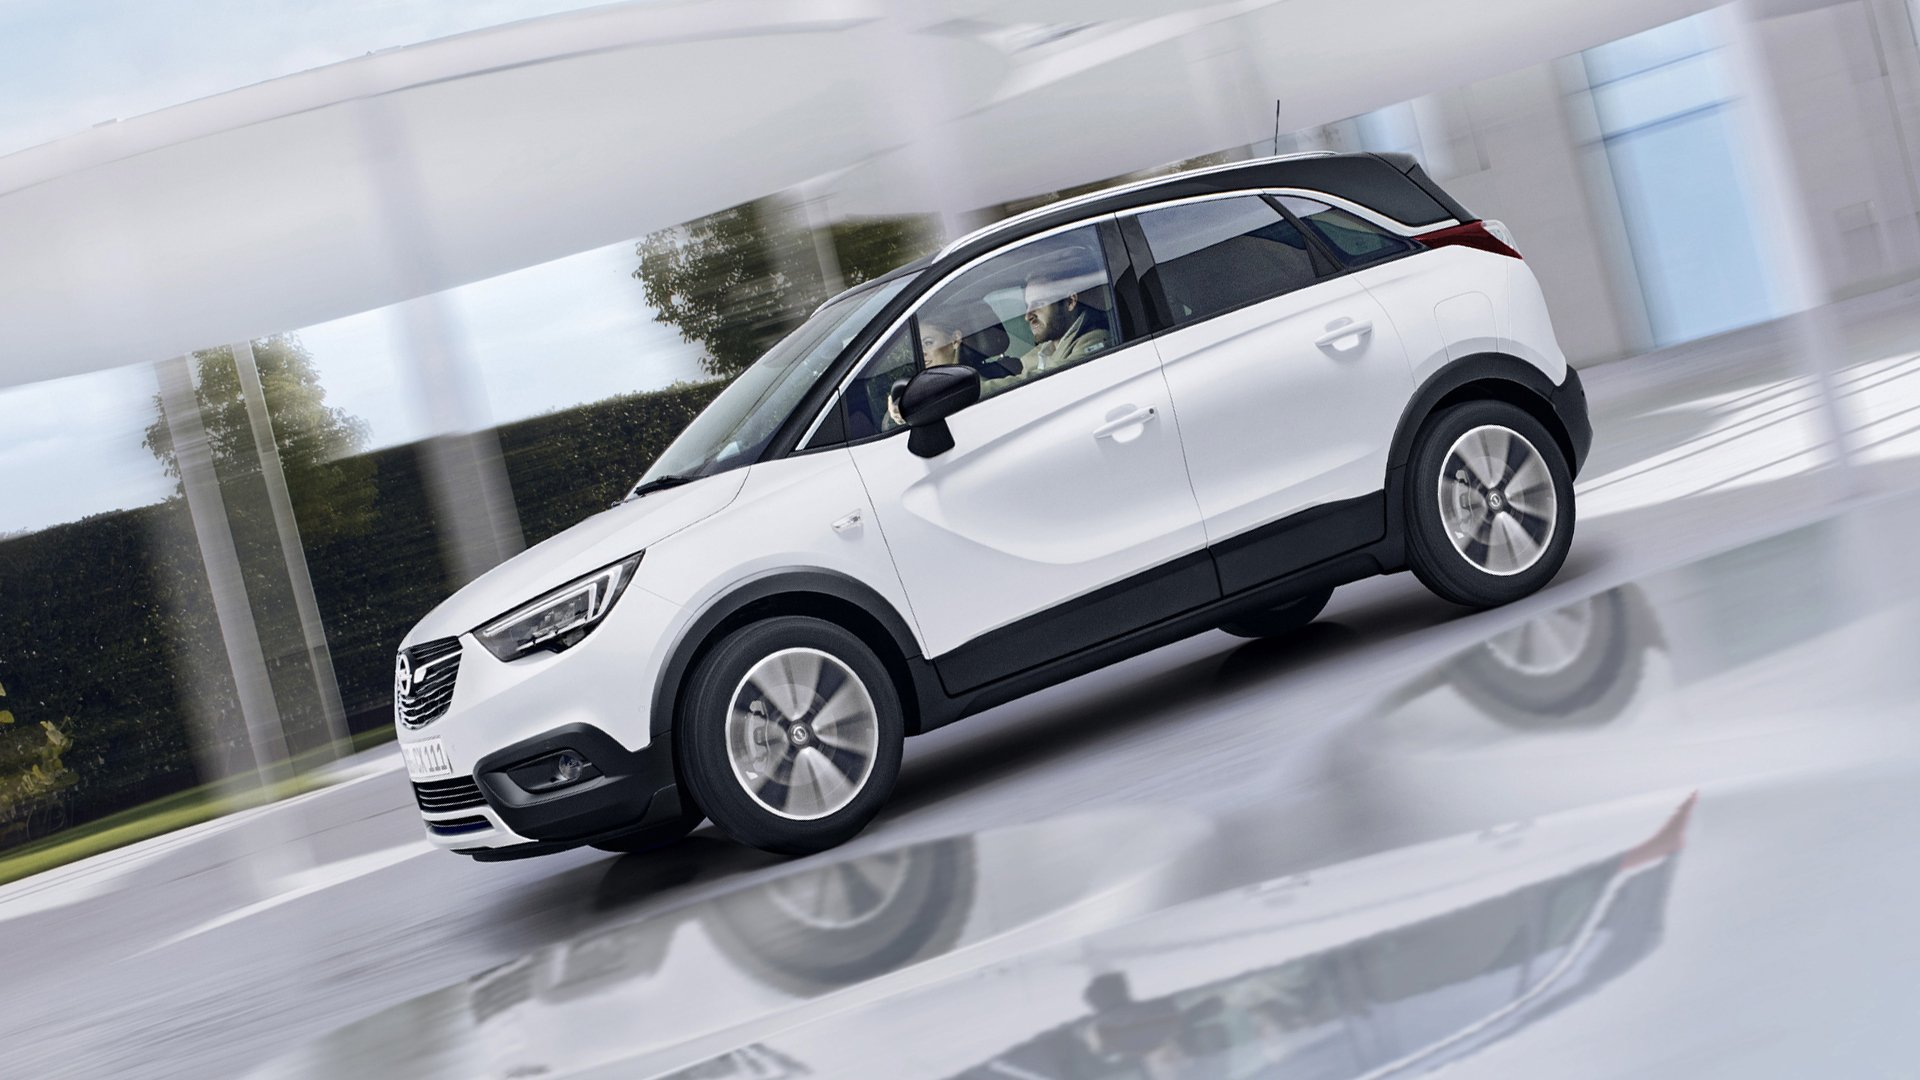 New 2019 Opel Crossland X Review